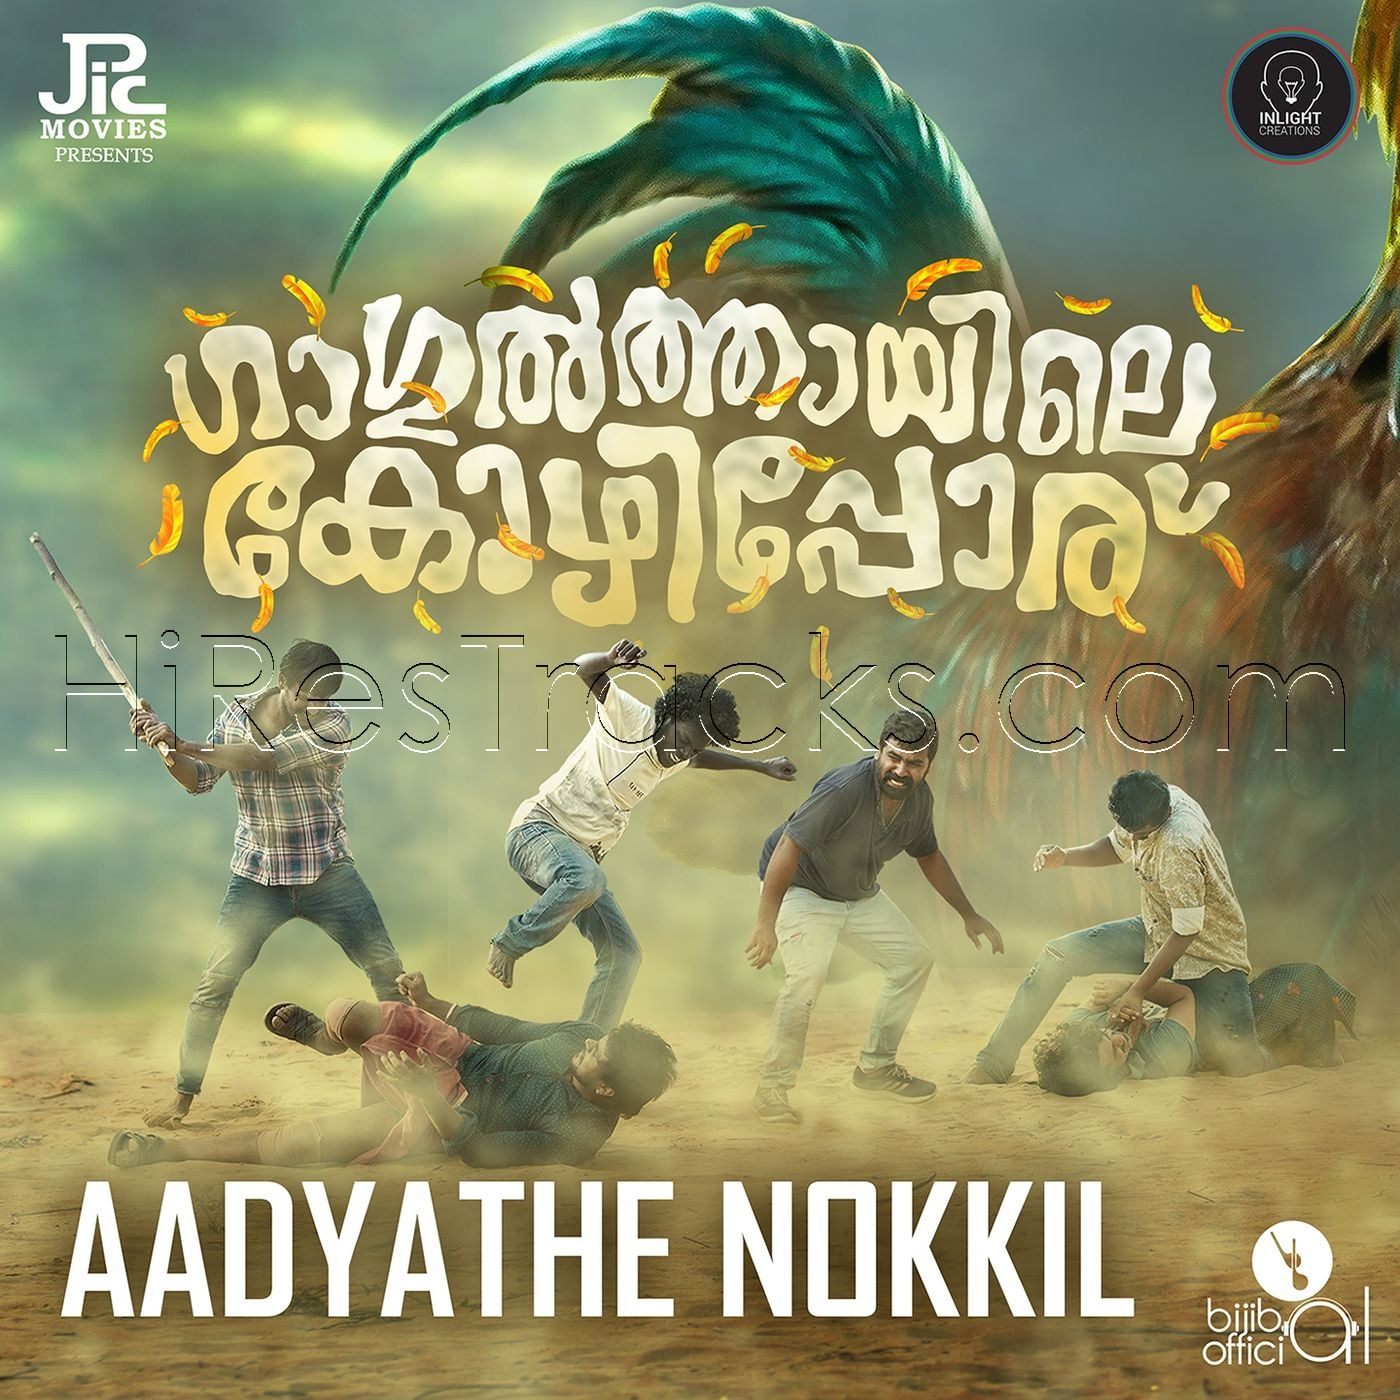 Aadyathe Nokkil (From Gagulthayile Kozhipporu) (2019) (Bijibal) (Inlight Creations) [Digital-RIP-FLAC]